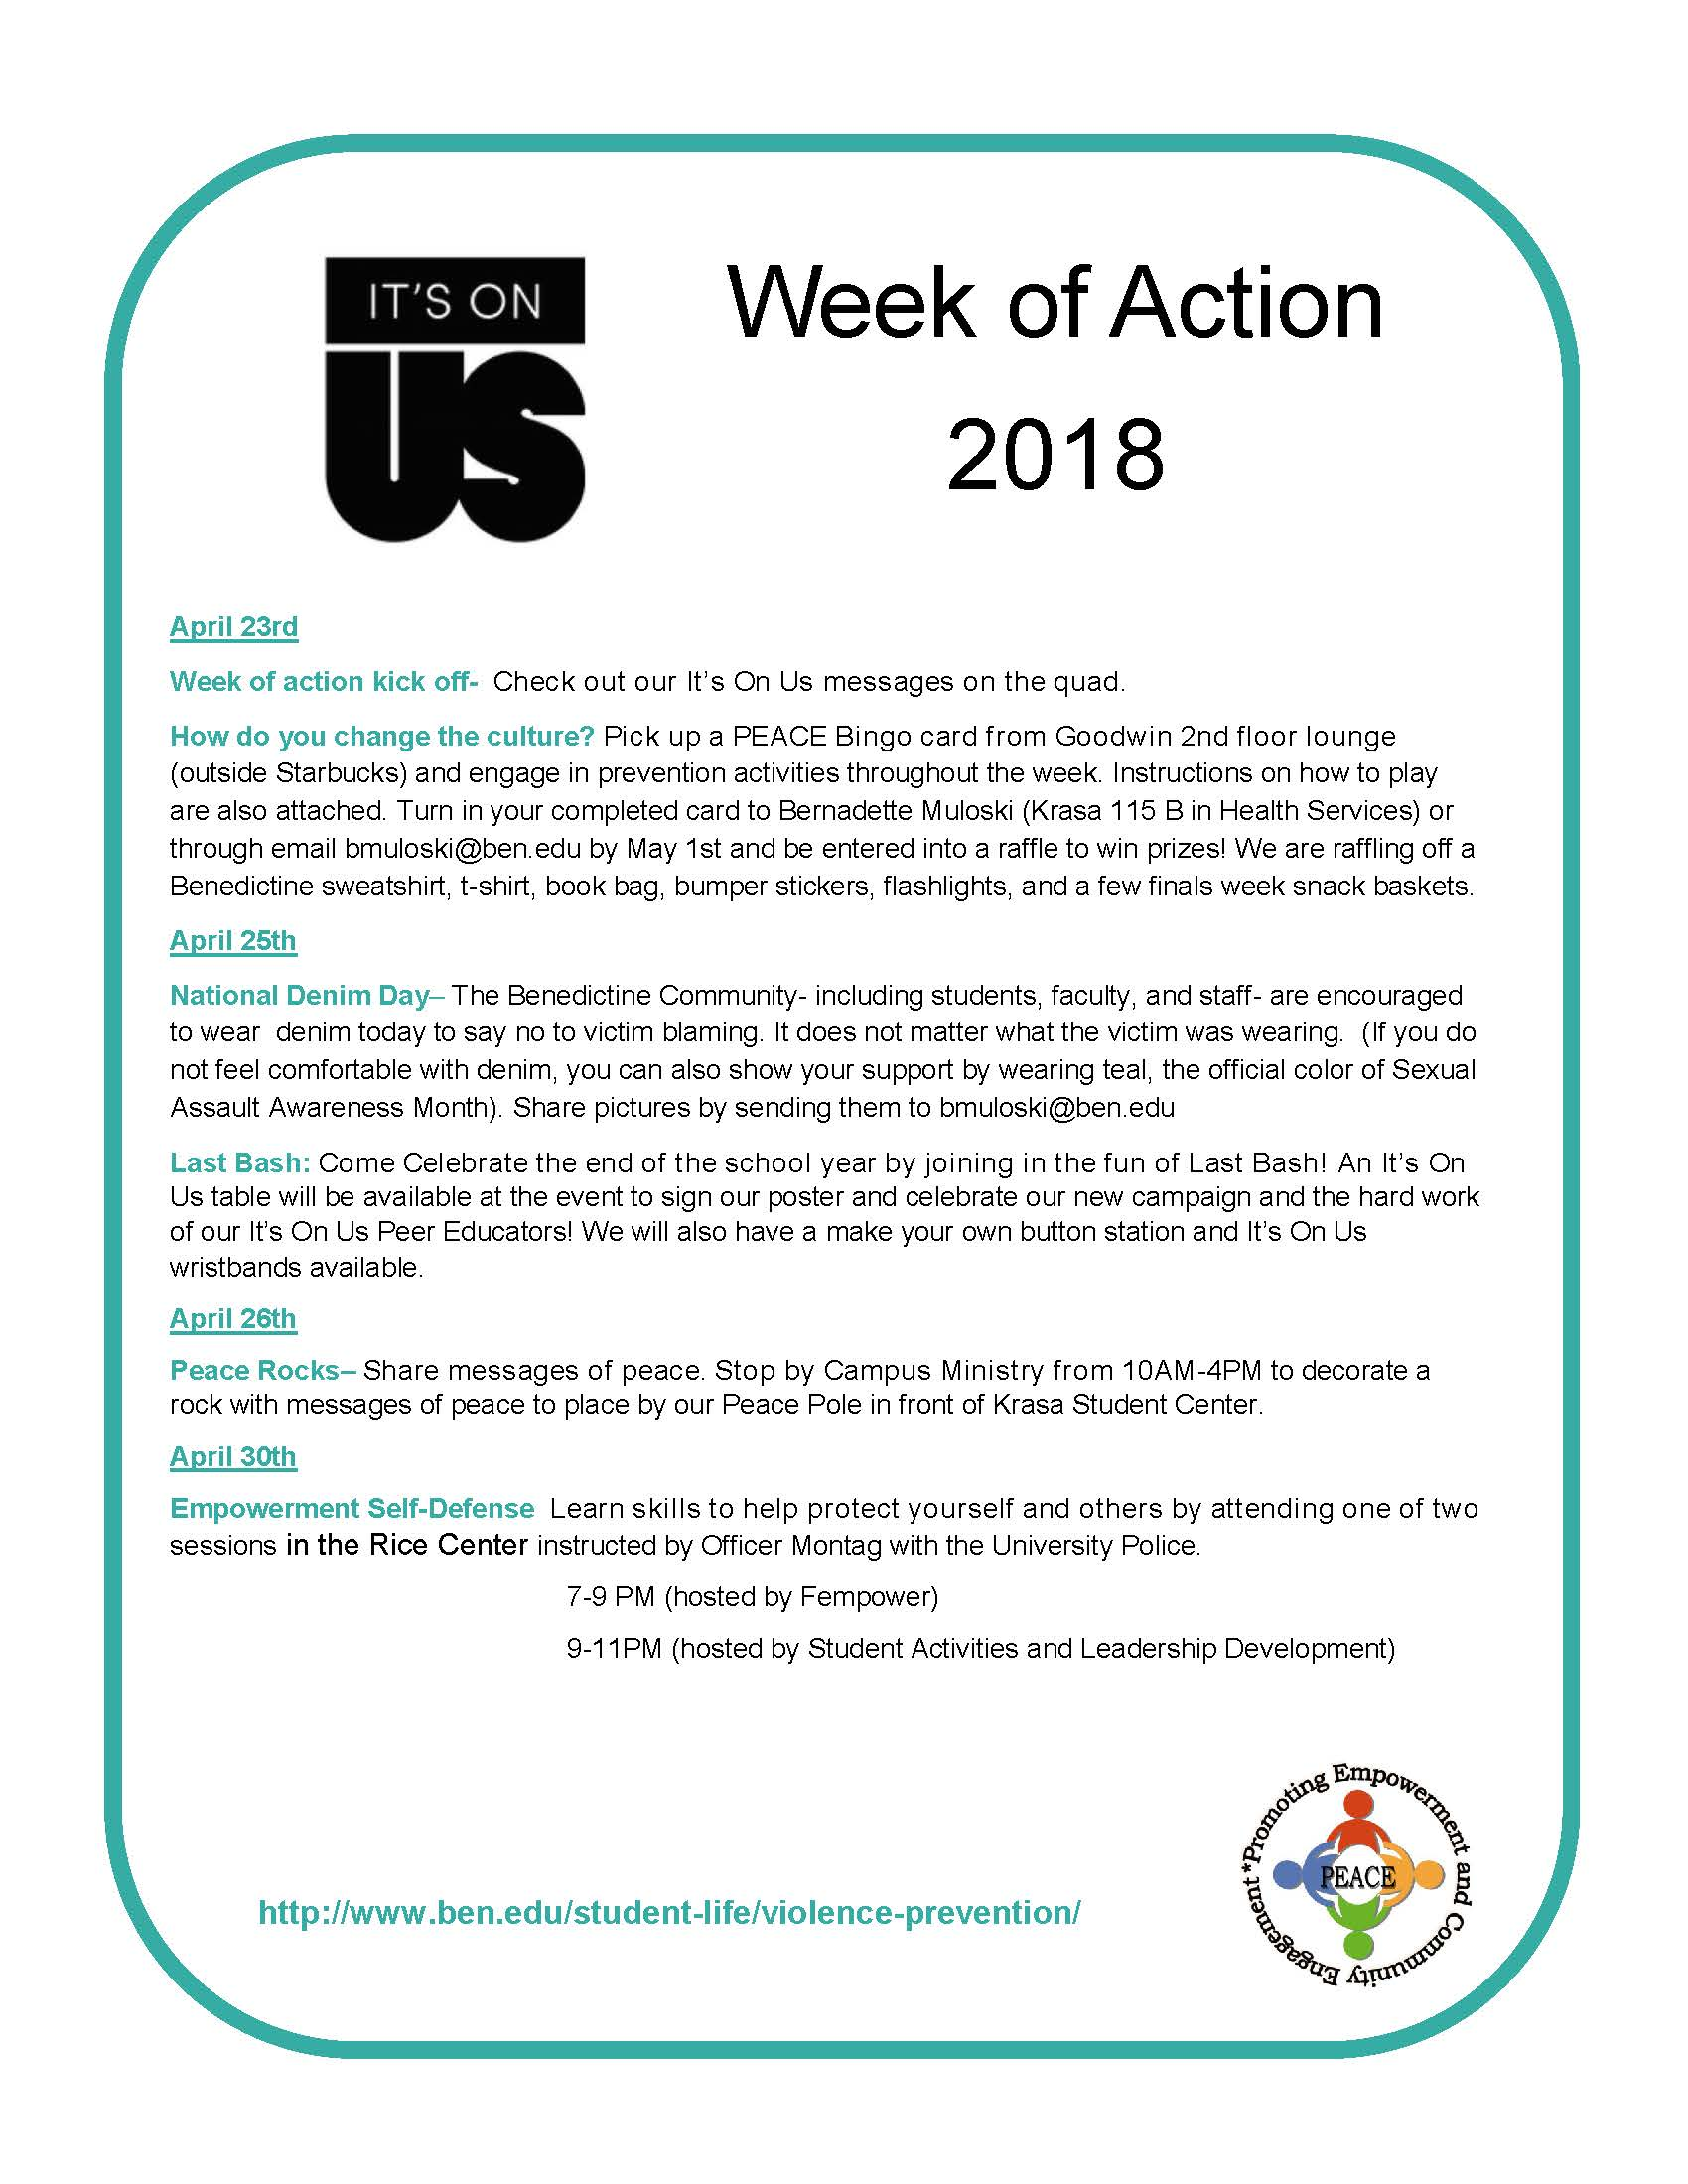 Week of Action 2018